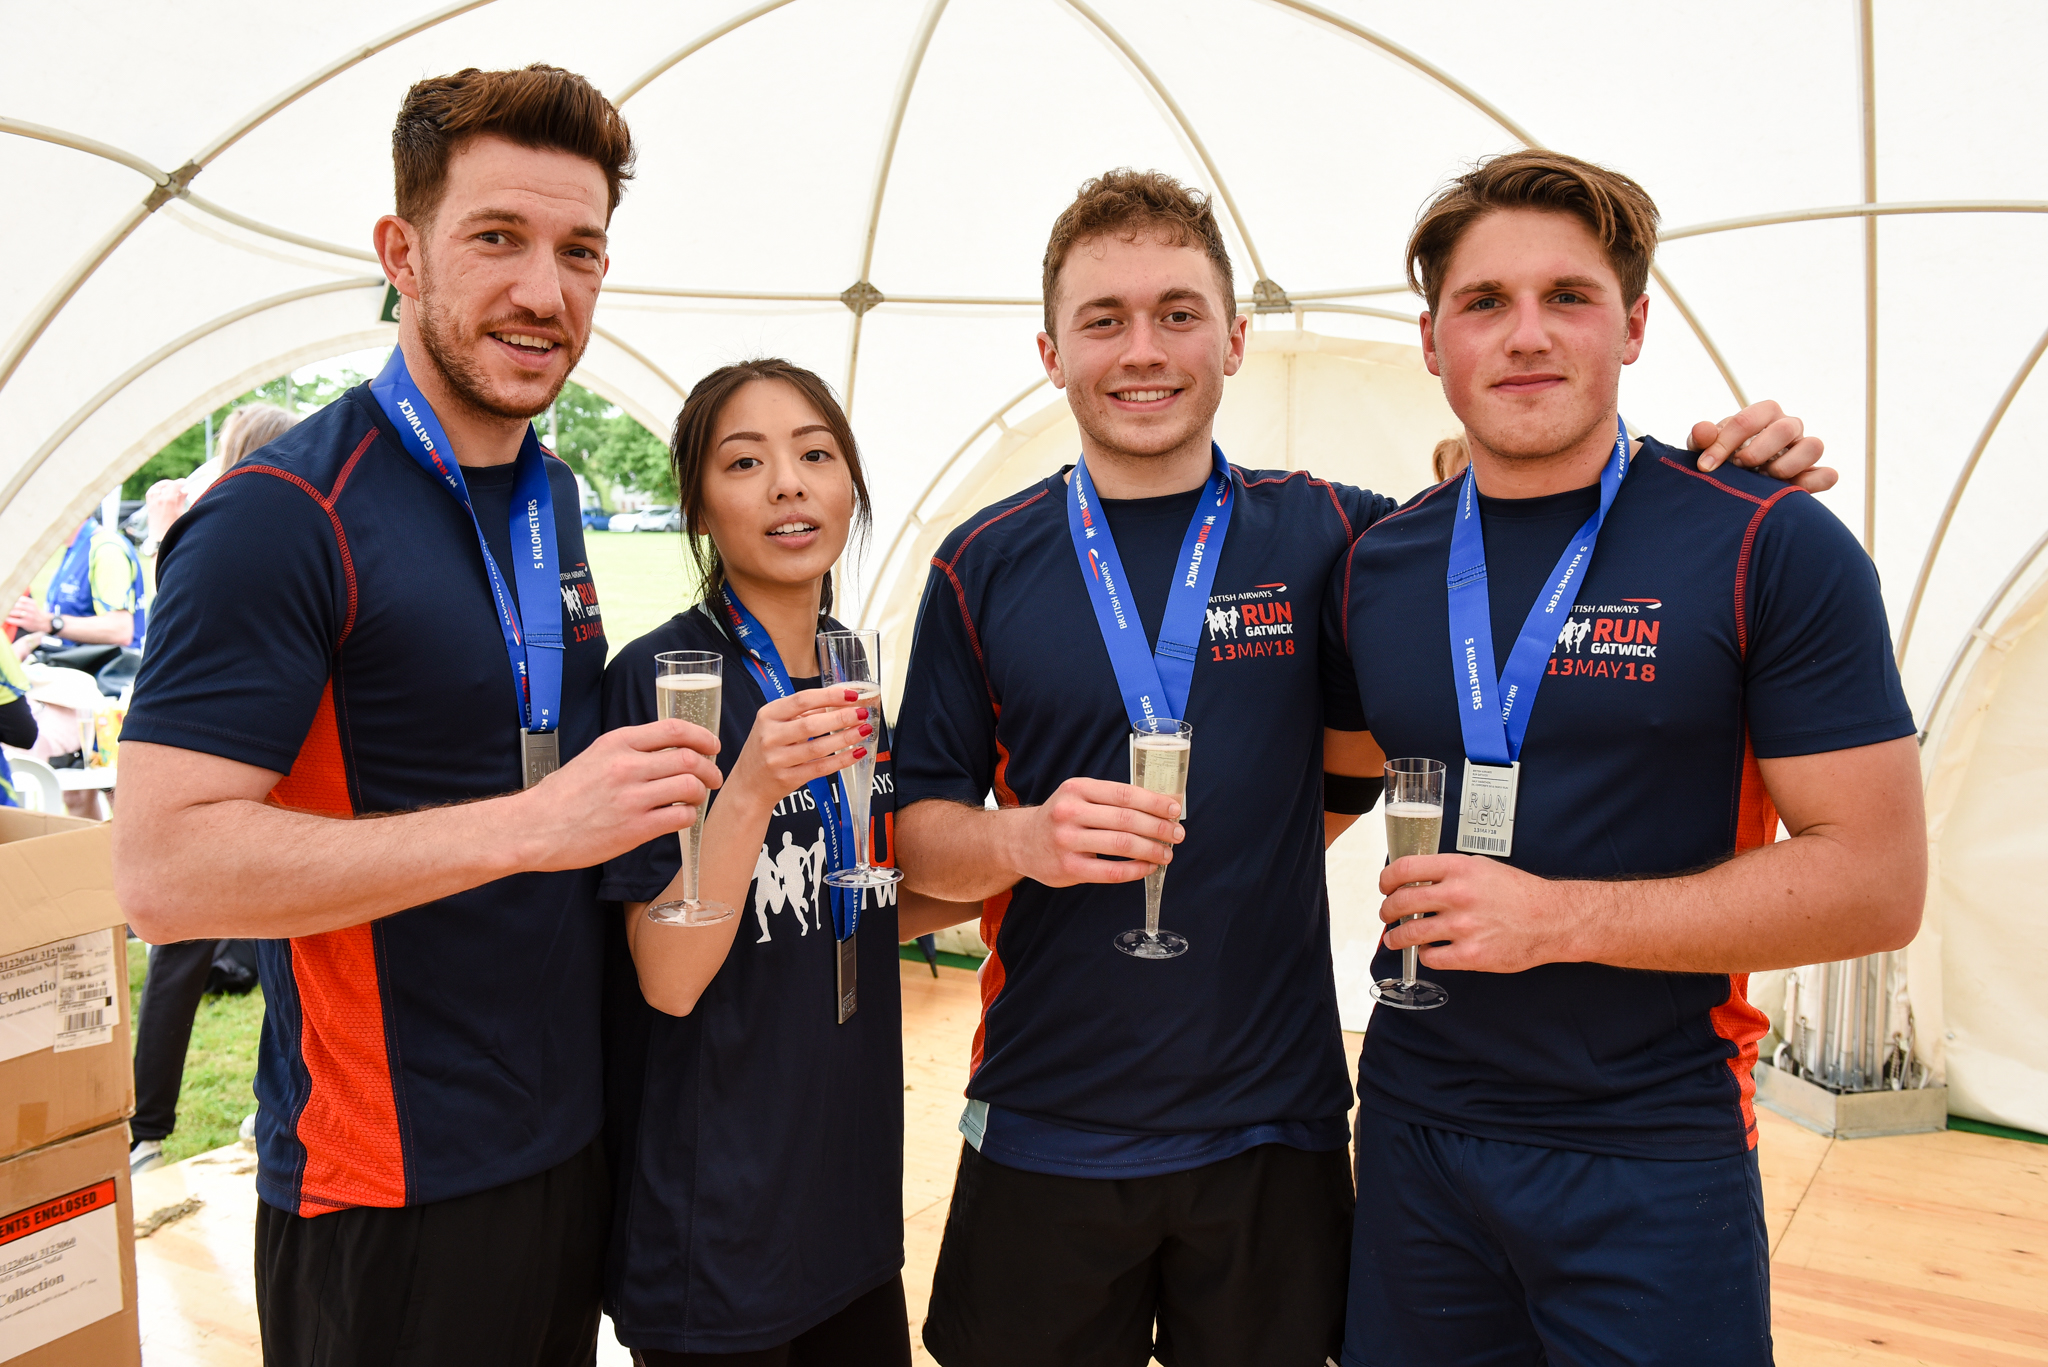 British Airways Run Gatwick | Ambra Recruitment Running Team